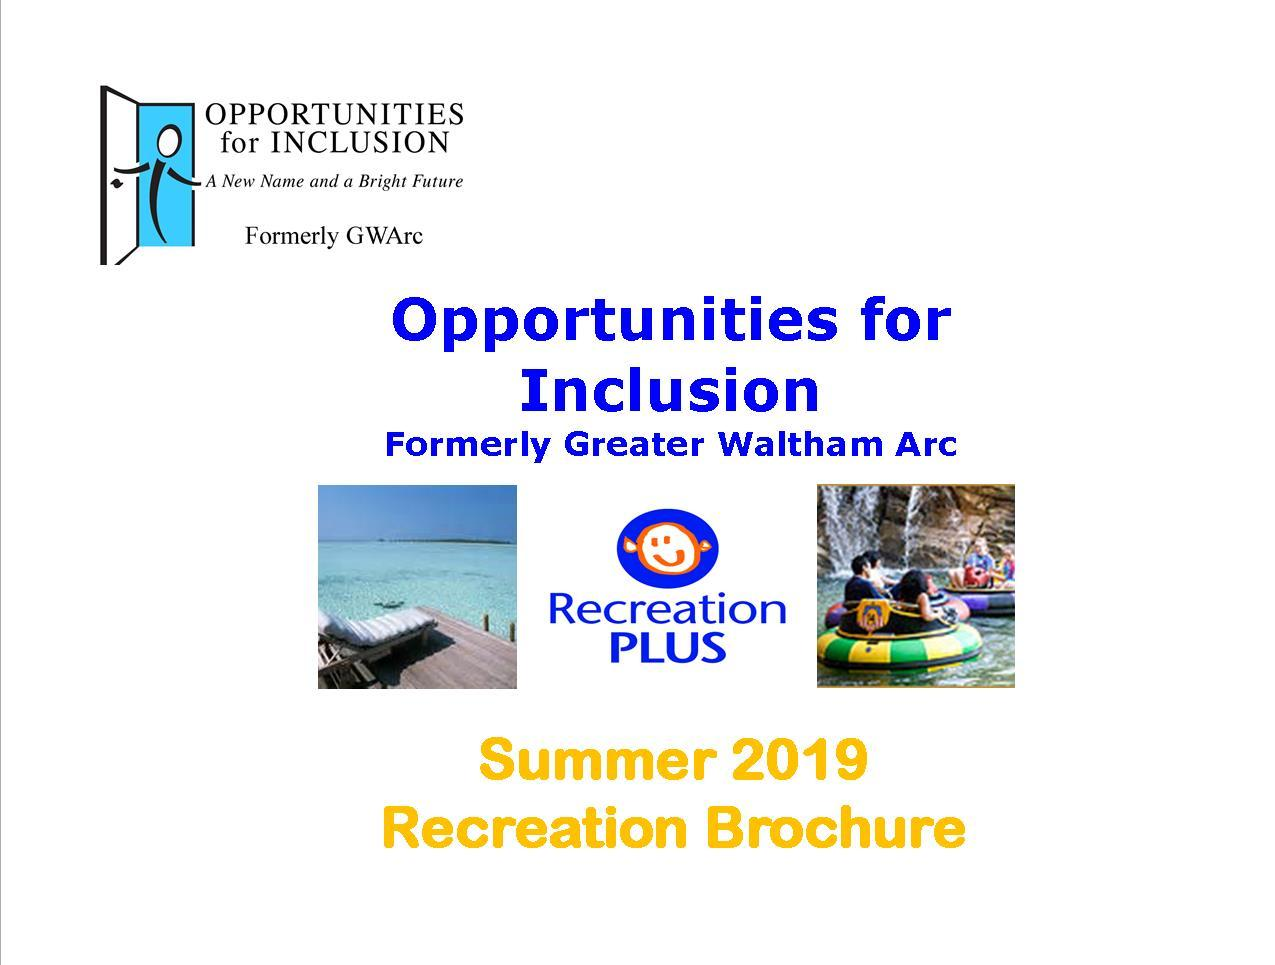 Summer_2019_Recreation_Brochure_for_the_web_cropped20190524095706